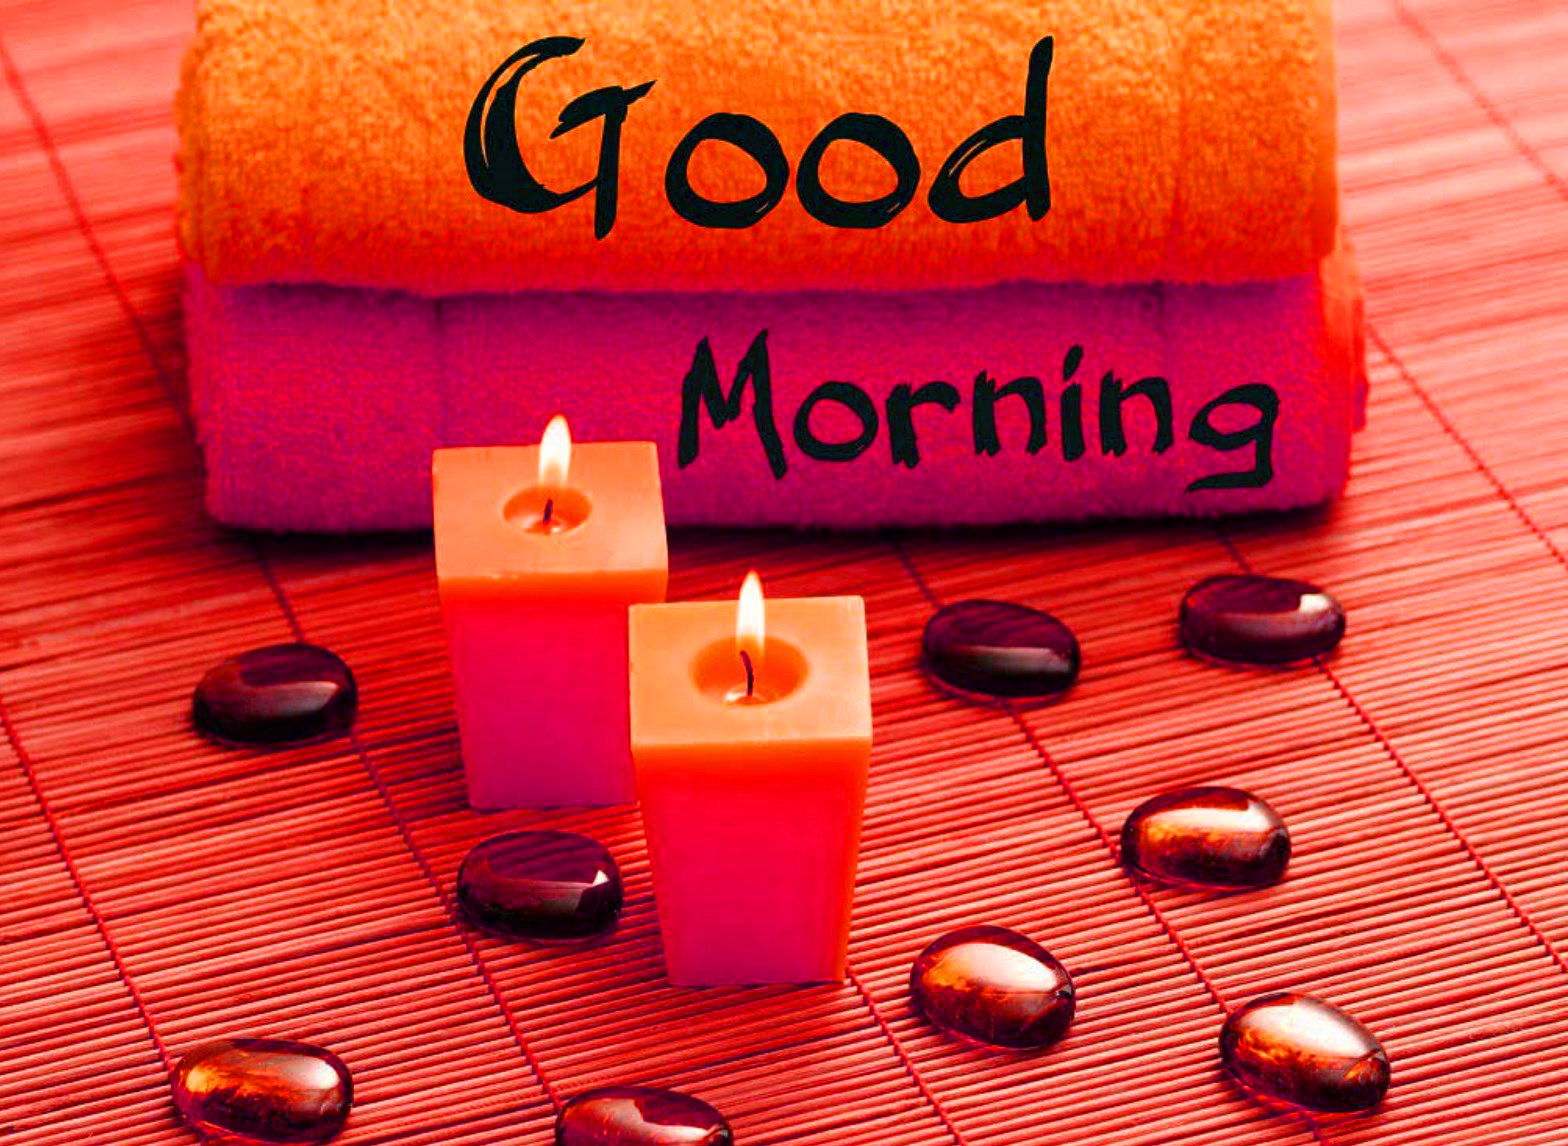 96+ Good Morning Images Photo Stickers For Whatsapp/Facebook